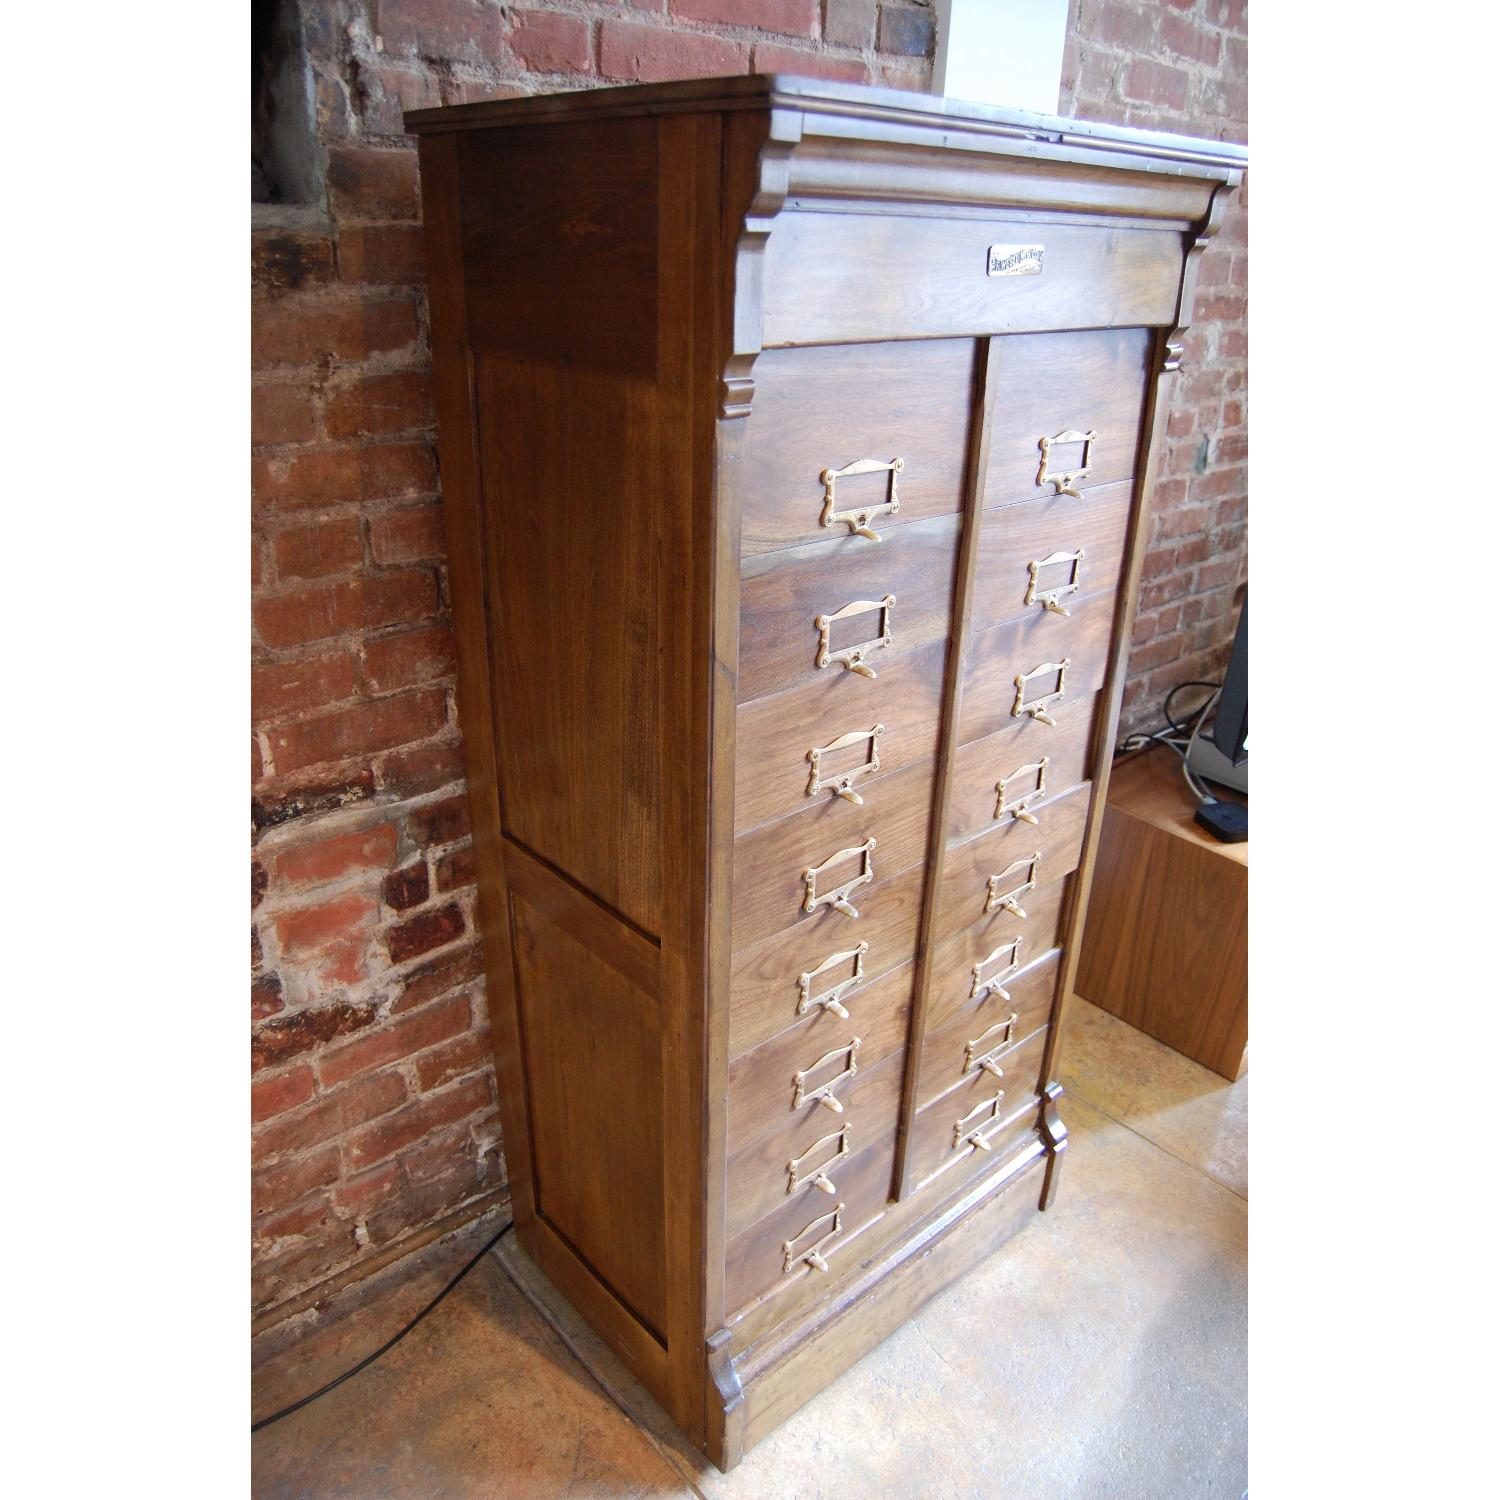 F. Wesel Manufacturing Company Tall File Cabinet - image-11